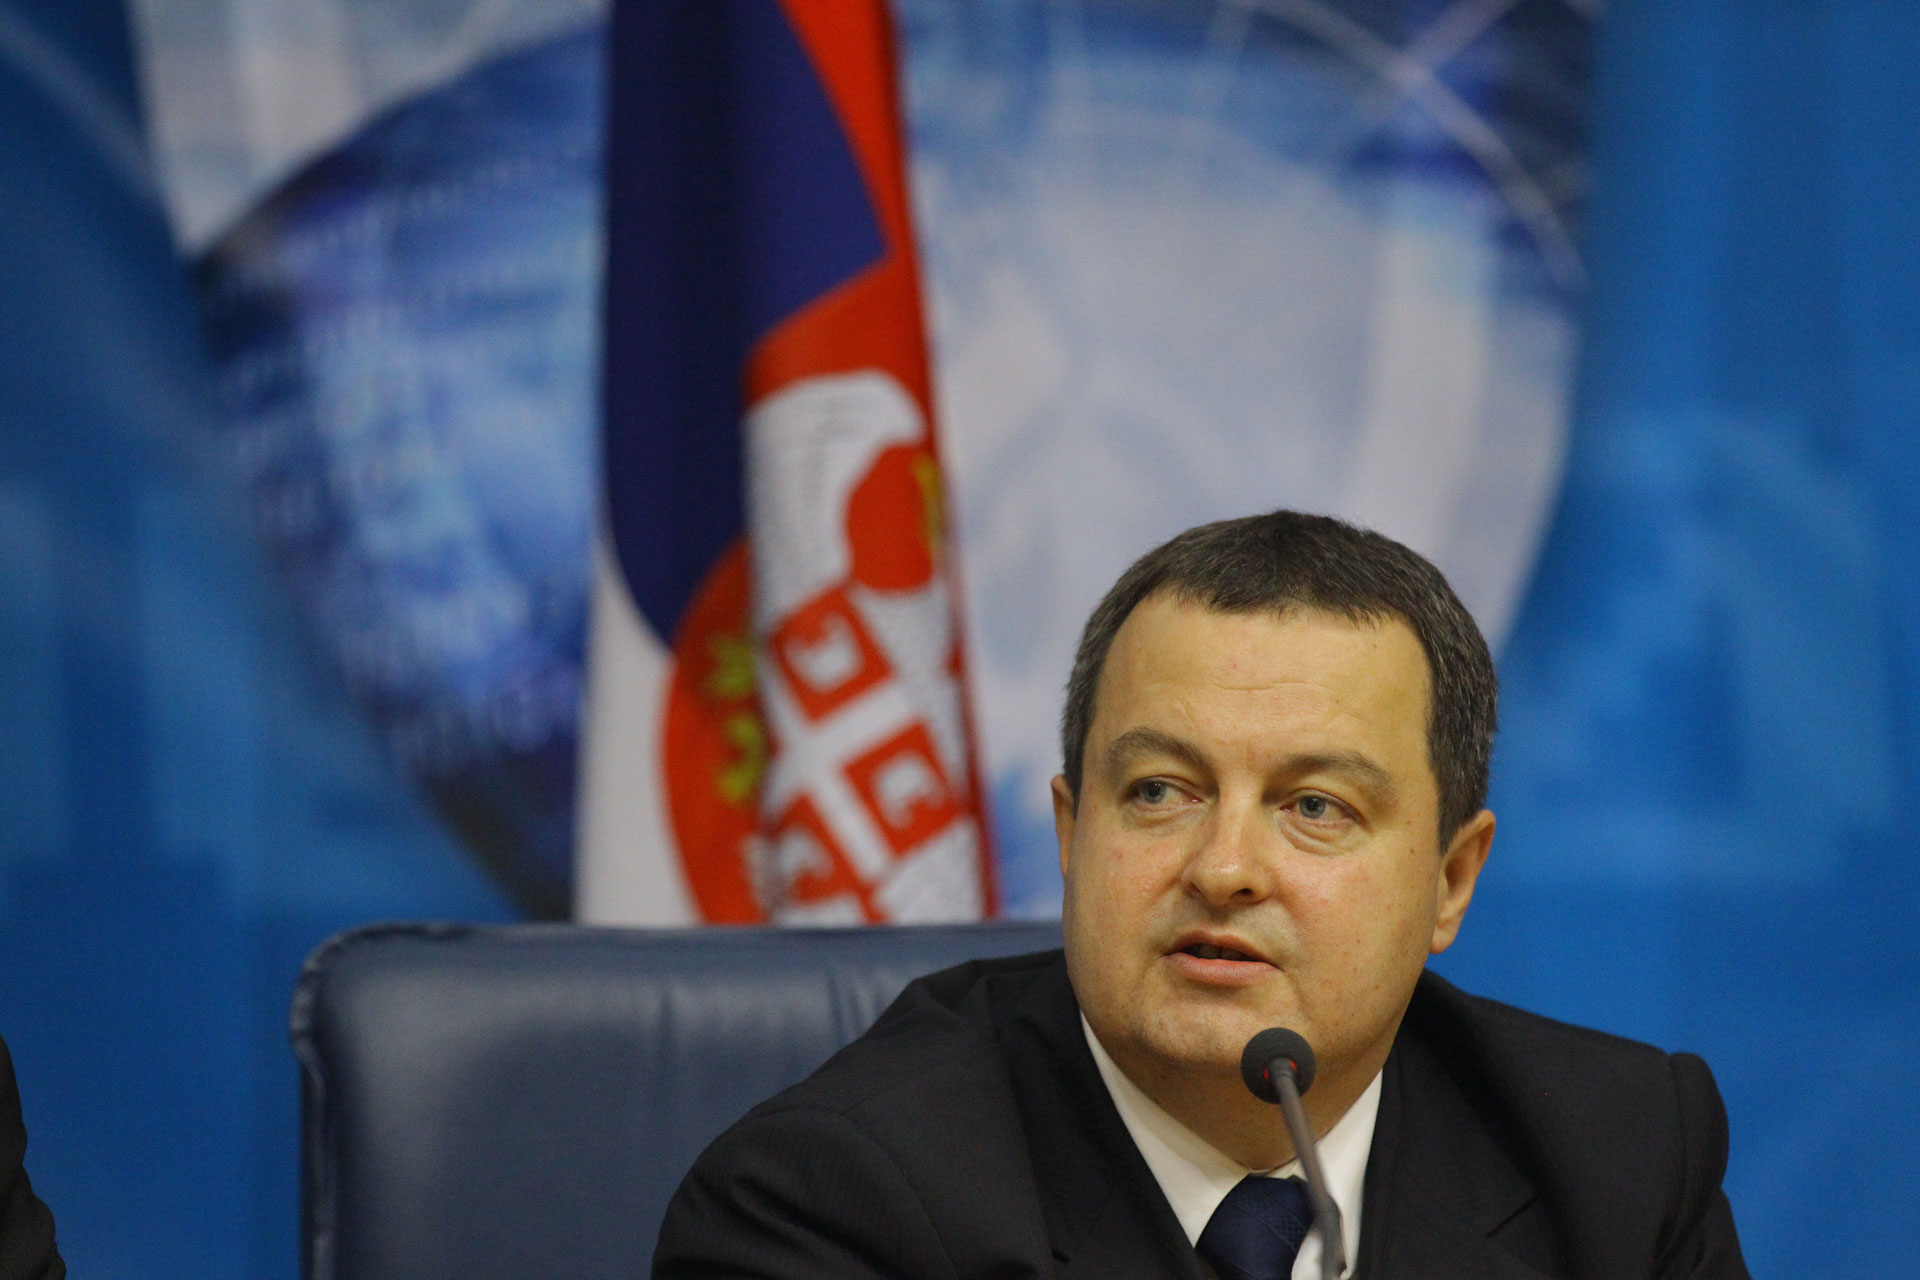 Dacic to EP: Condemn Seselj, not Serbia